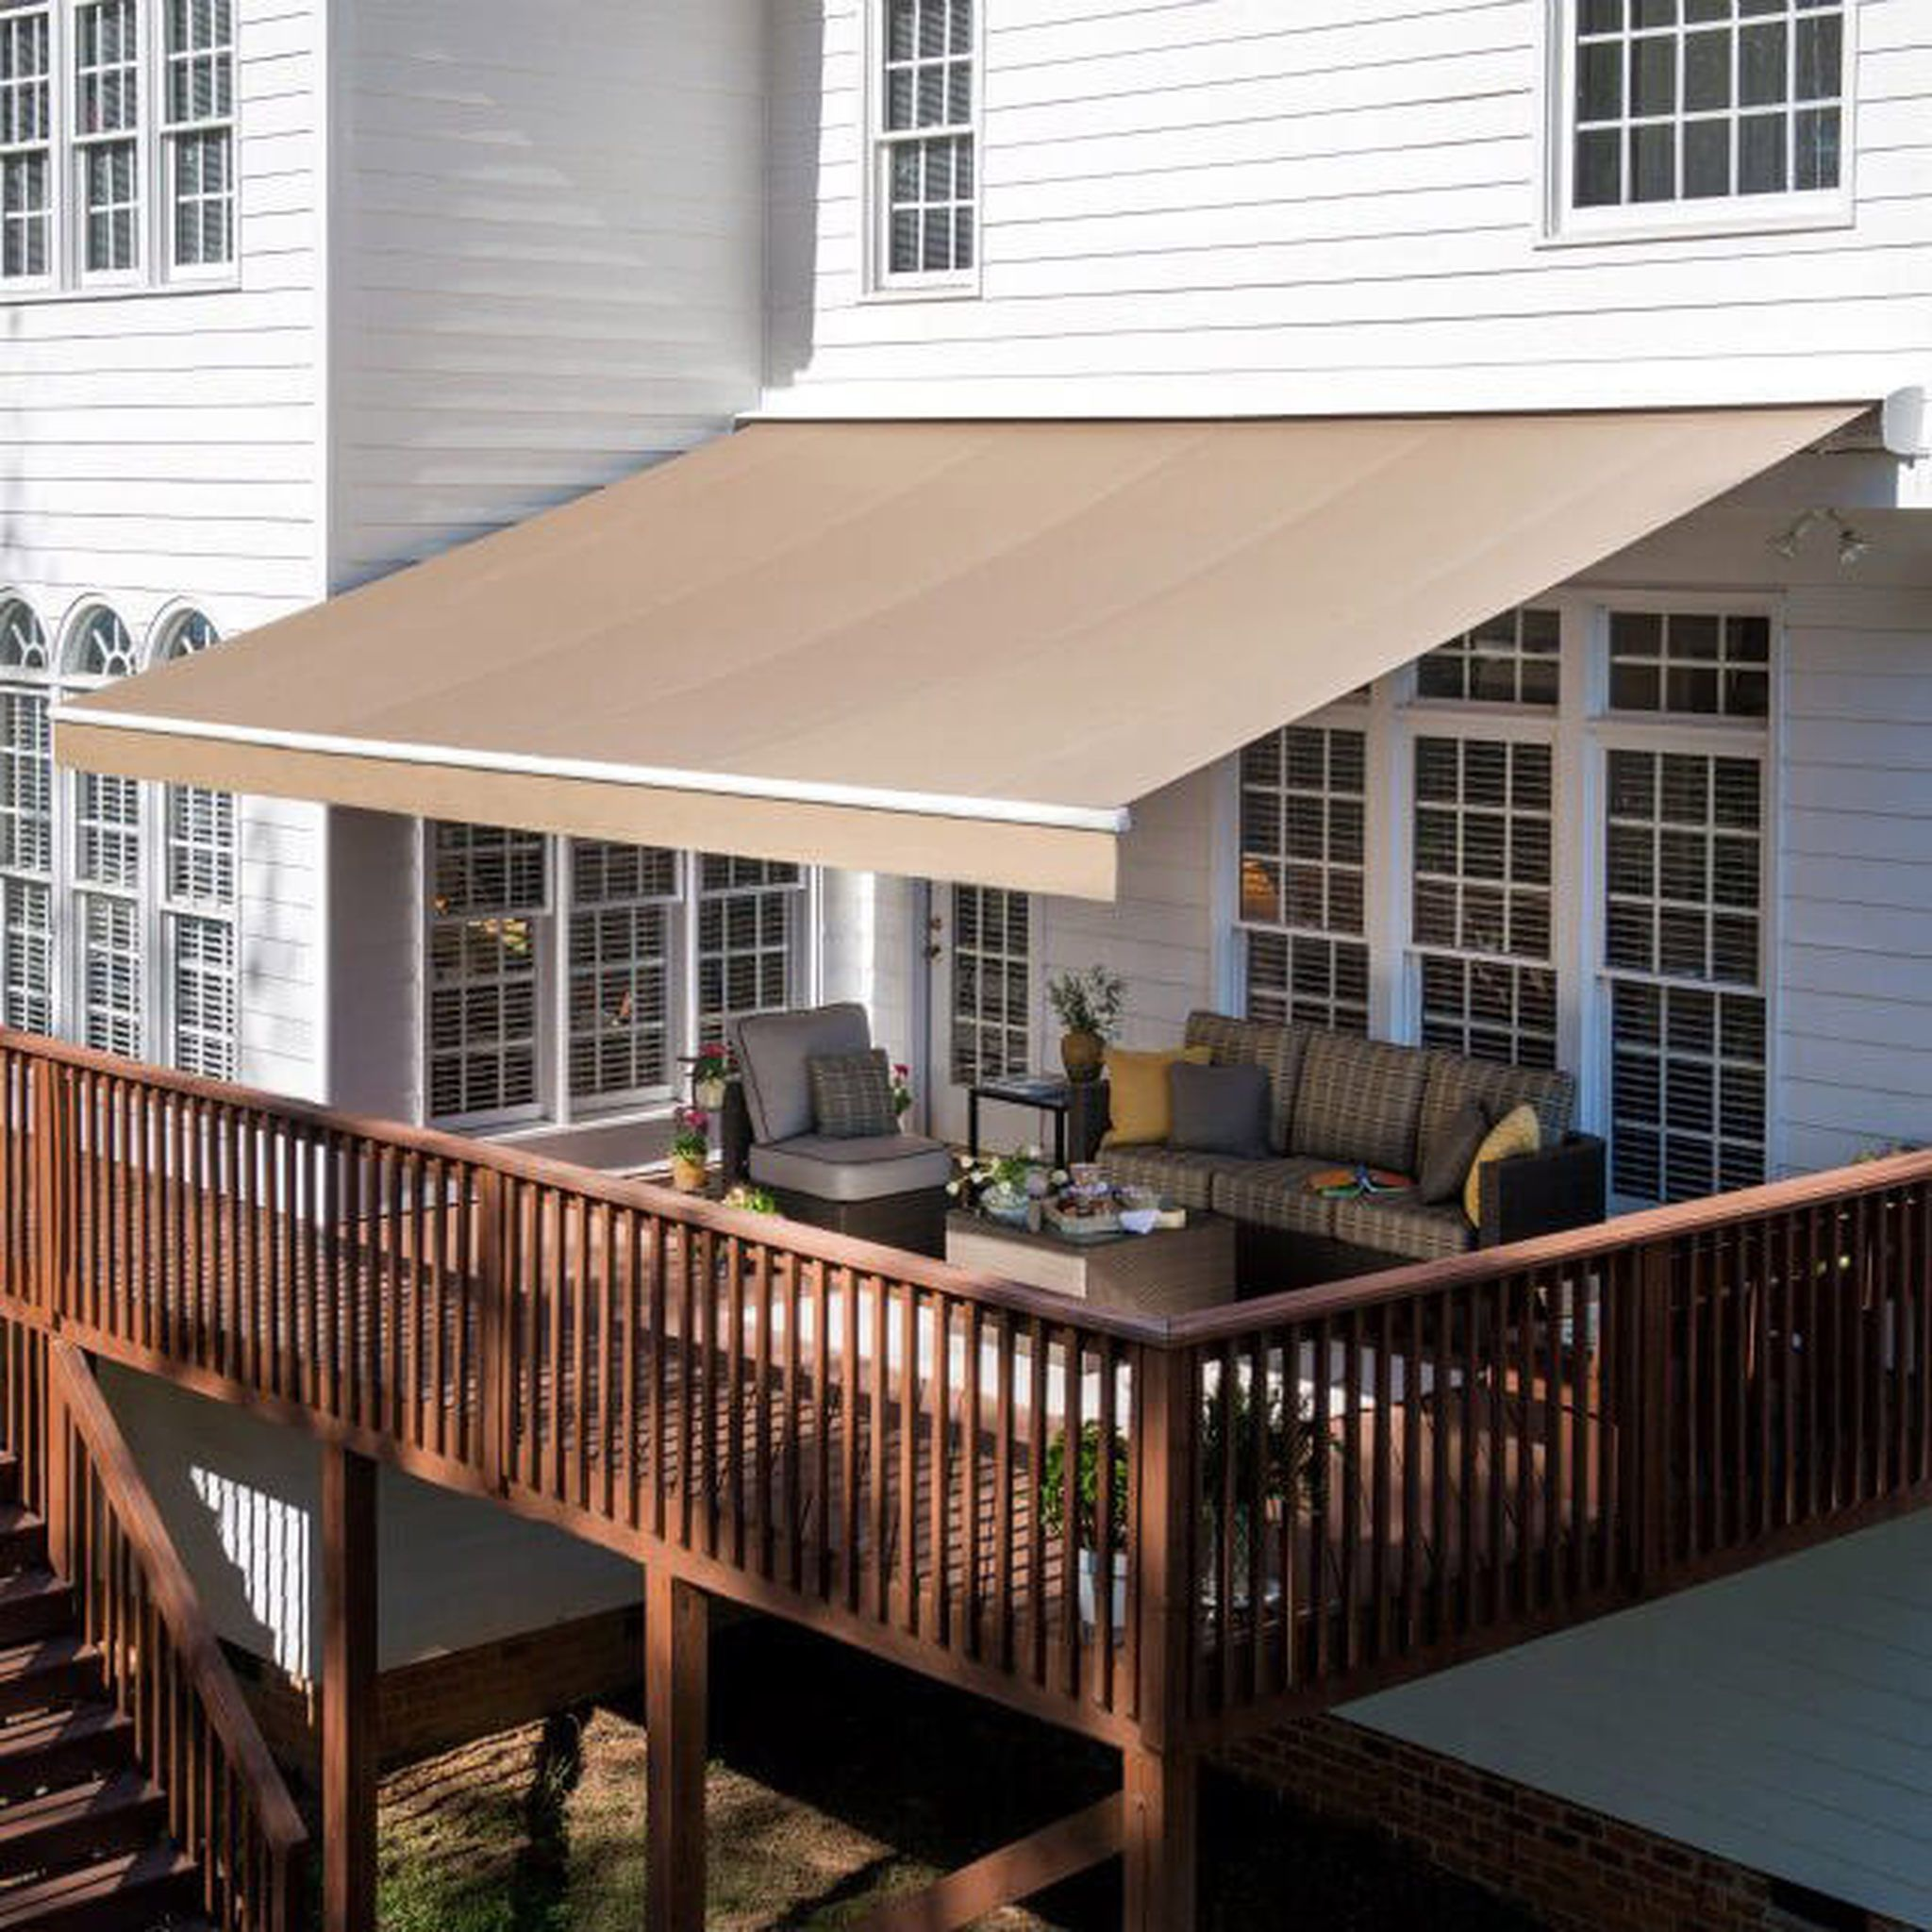 Solair Shade Solutions Awning Ps2000 11 9 X 10 2 In 2020 Outdoor Awnings Patio Awning Deck Awnings